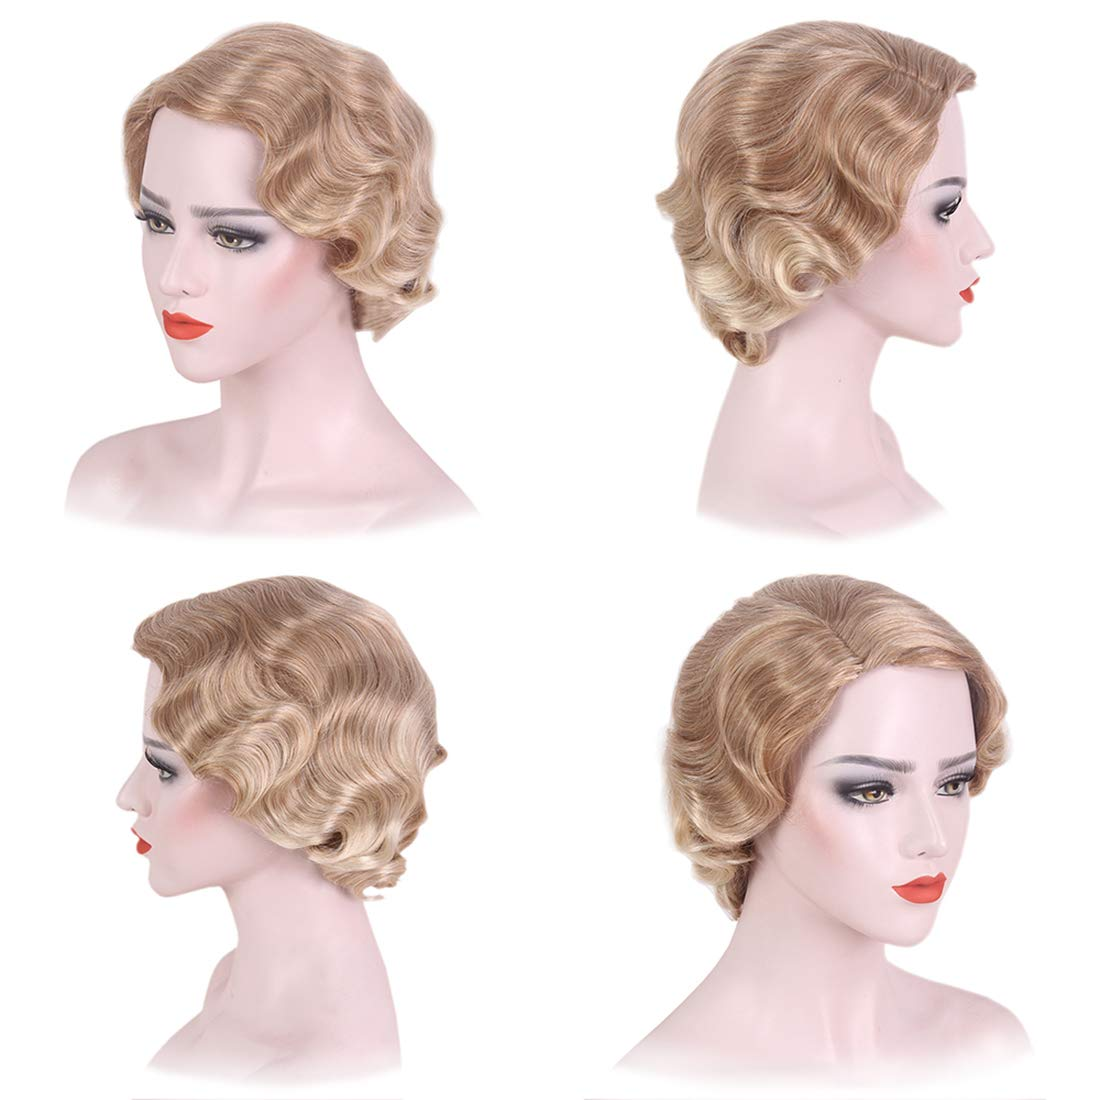 1920s Headband, Headpiece & Hair Accessory Styles STfantasy Finger Wave Wig 1920s Flapper Ombre Blonde Women Cosplay Costume $25.99 AT vintagedancer.com